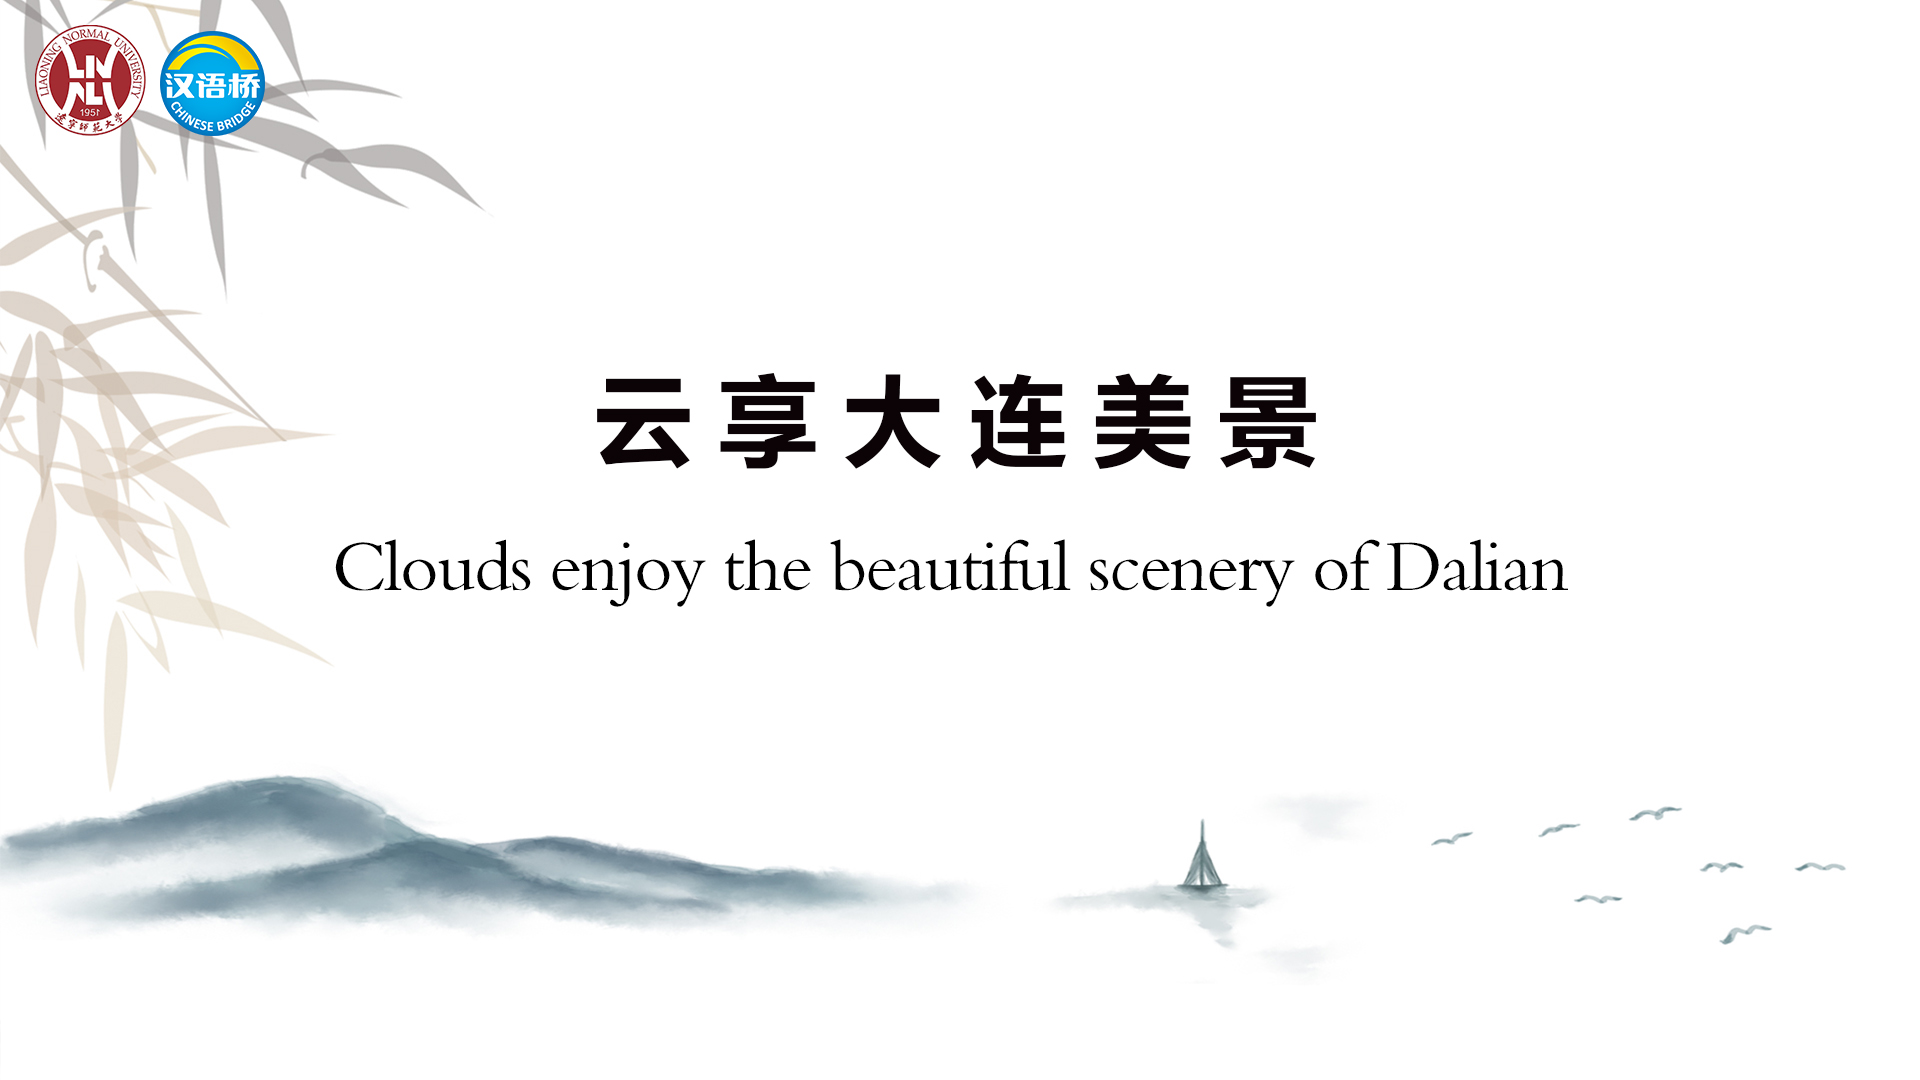 Cloudy enjoy the beautiful scenery of Dalian